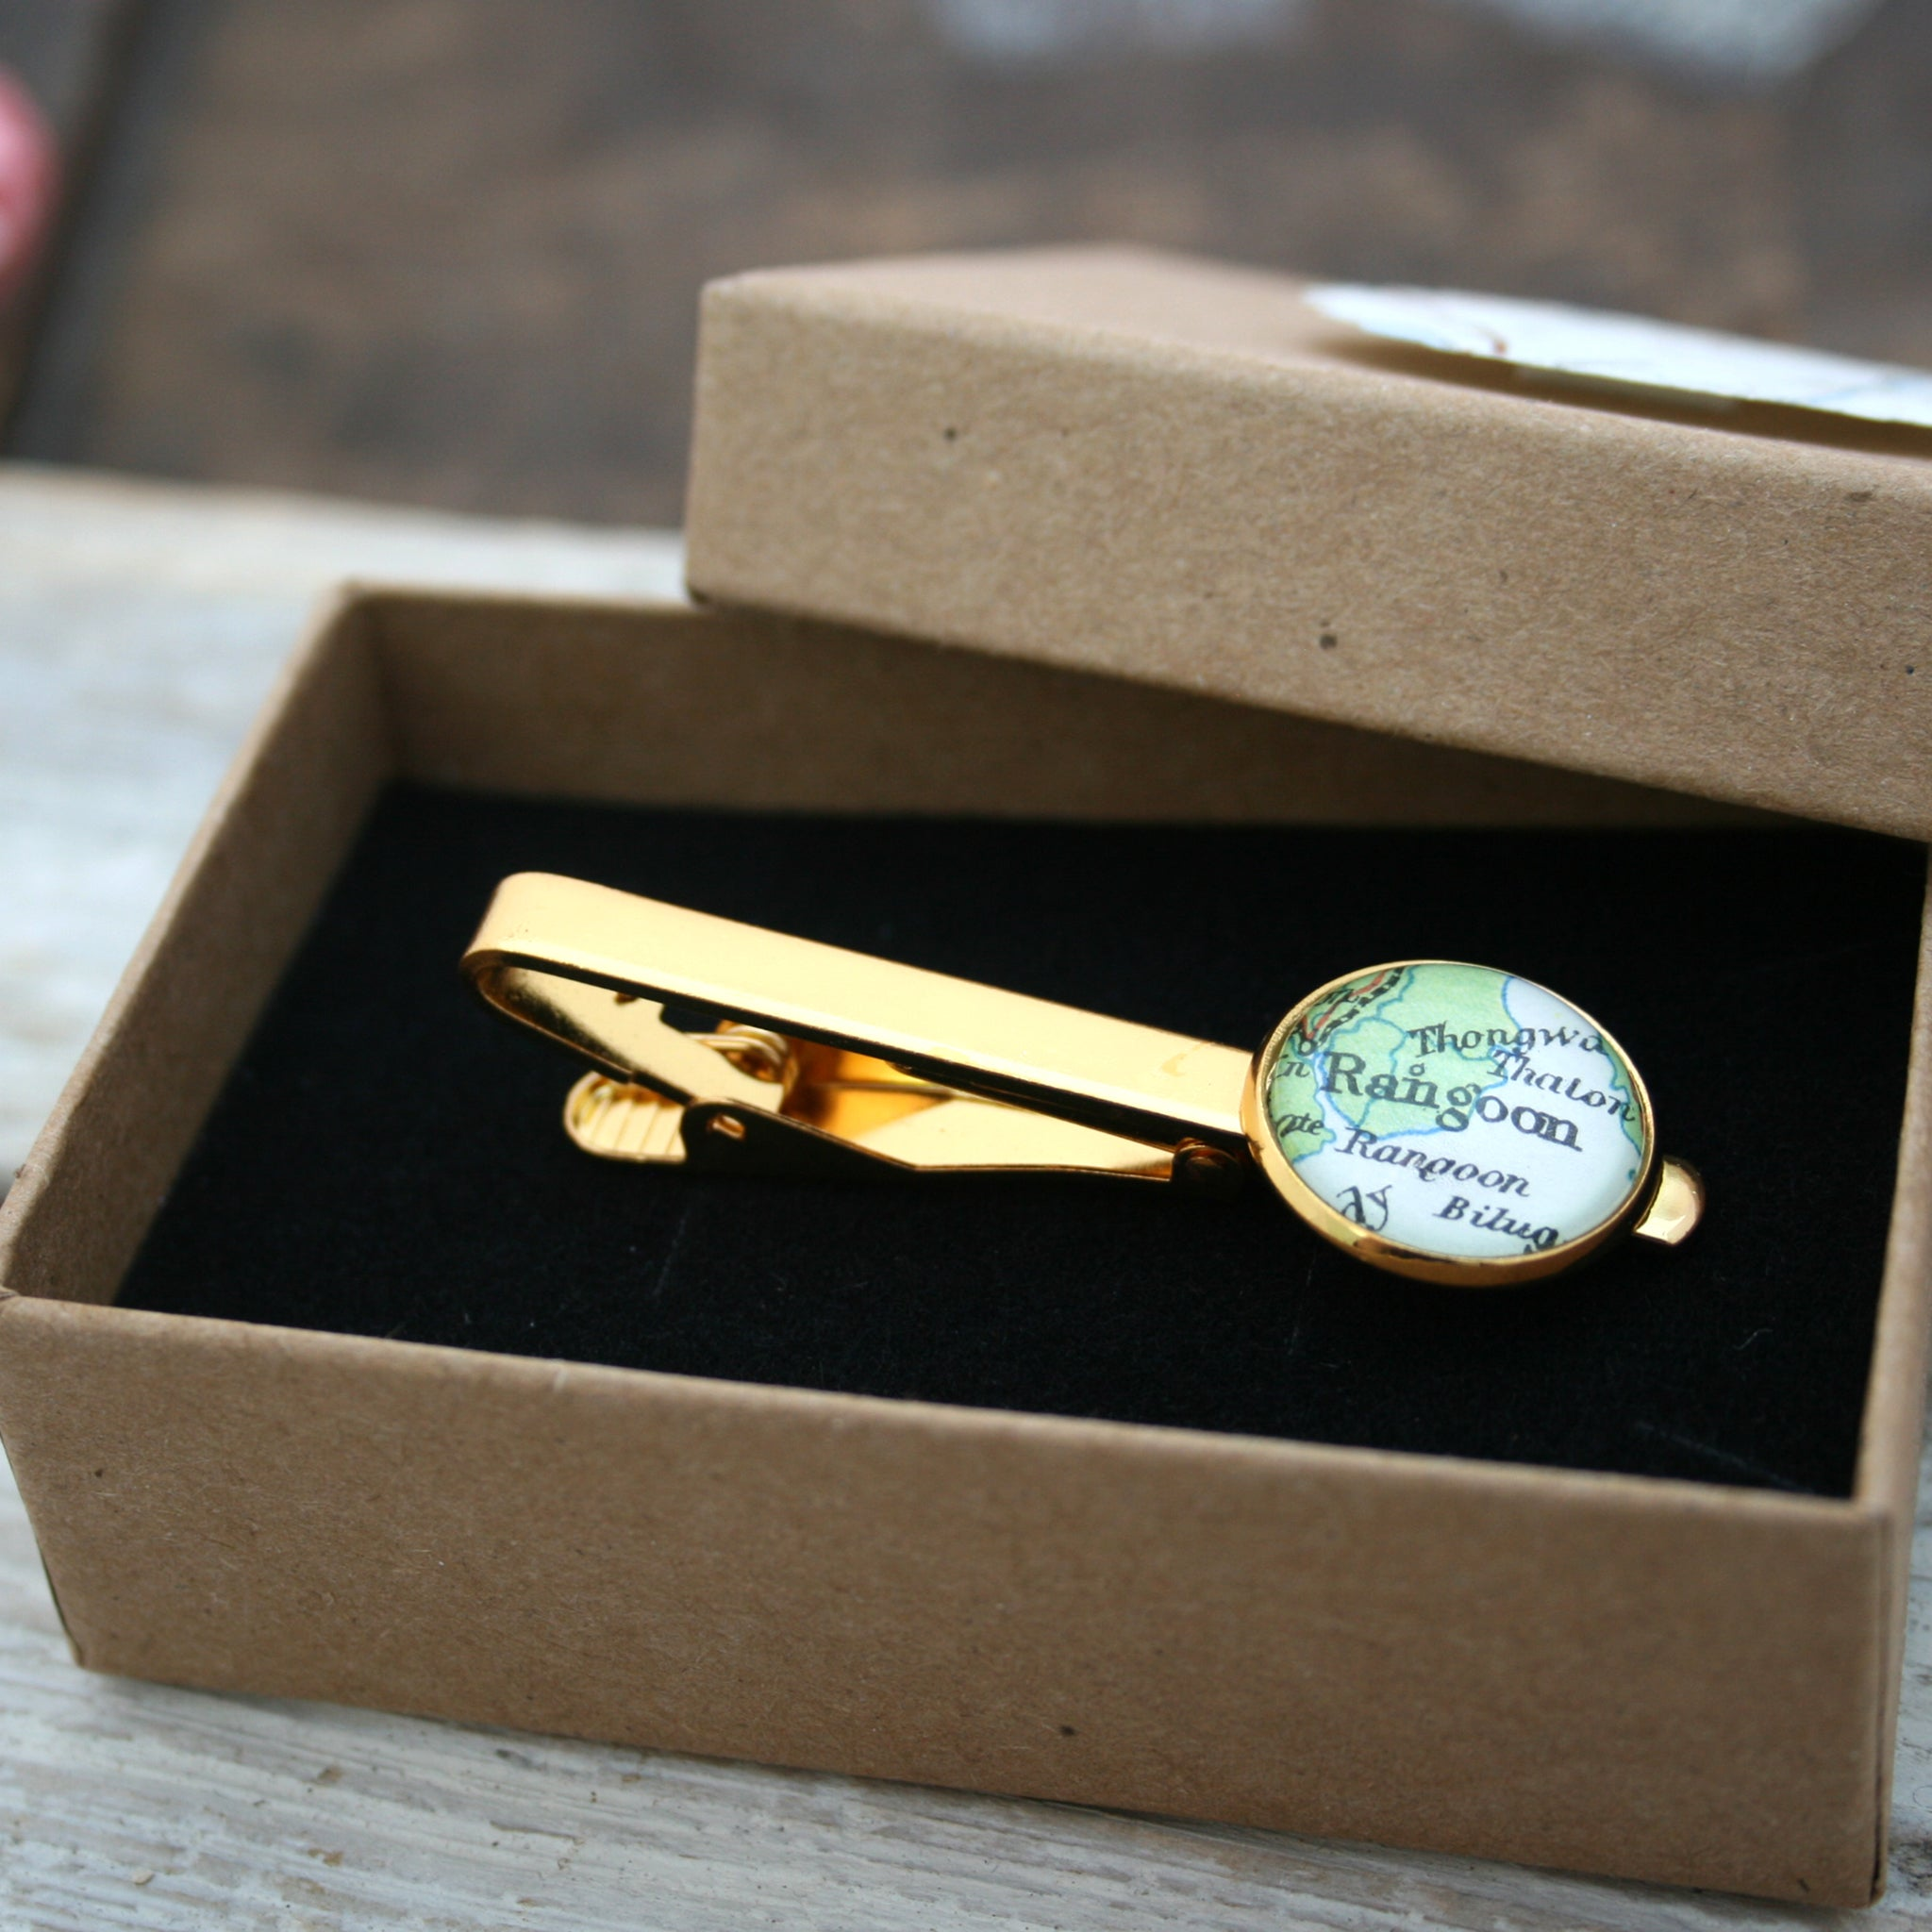 Personalised Tie Clip in gold color featuring map of Rangoon in a box